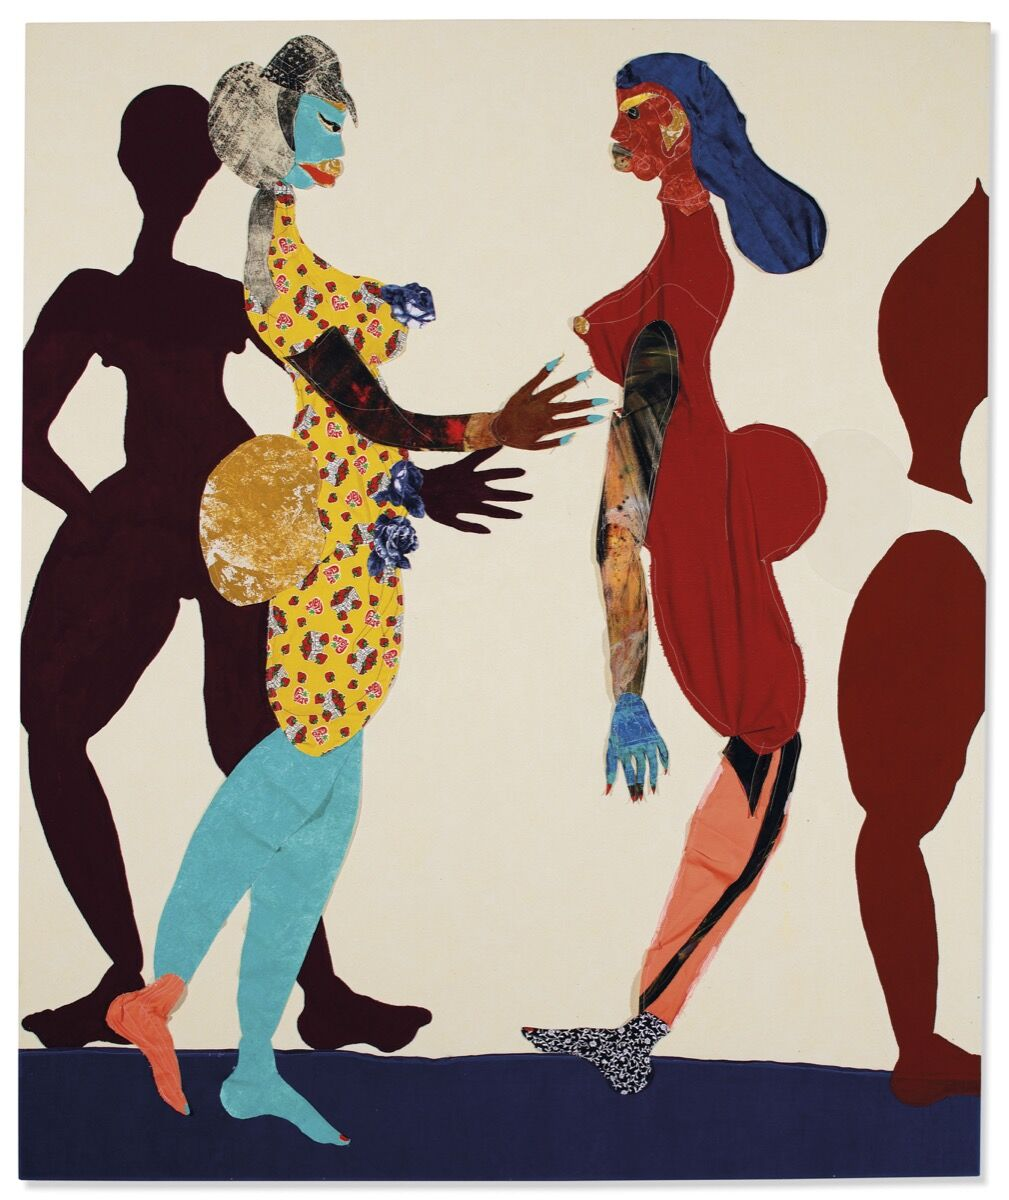 Tschabalala Self, Out of Body, 2015. Courtesy of Christie's.